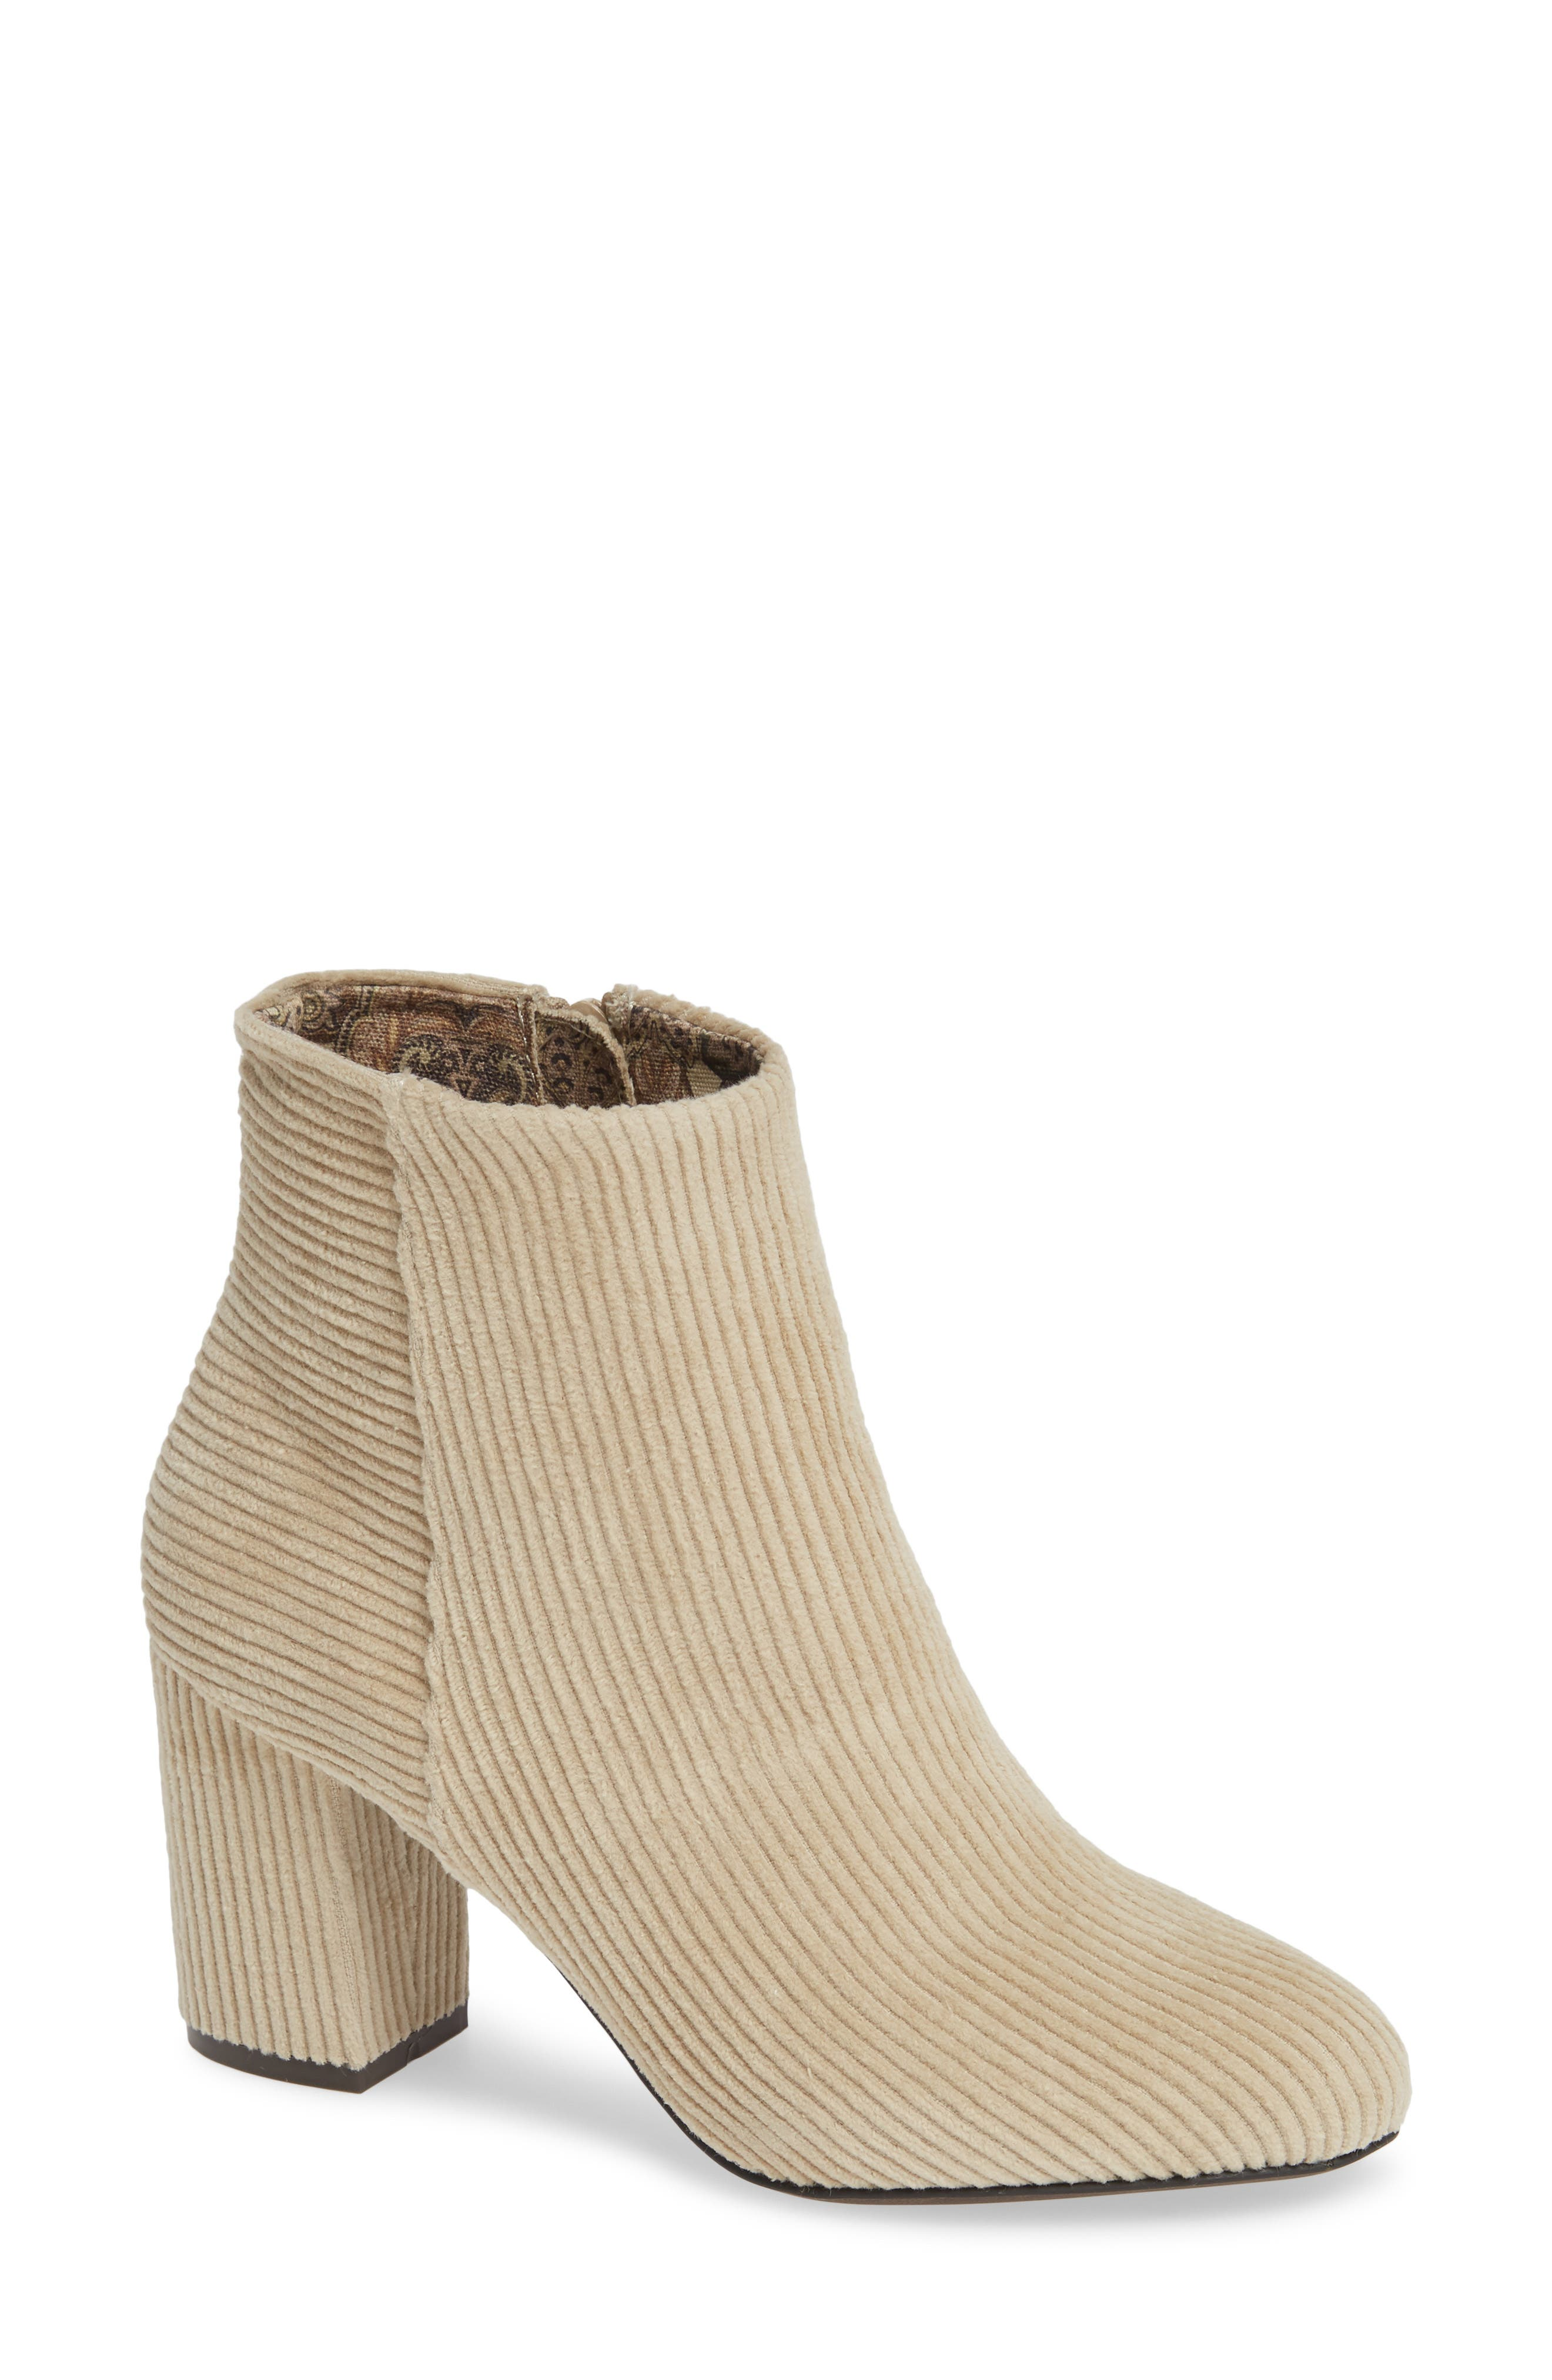 BAND OF GYPSIES Andrea Bootie in Winter White Corduroy